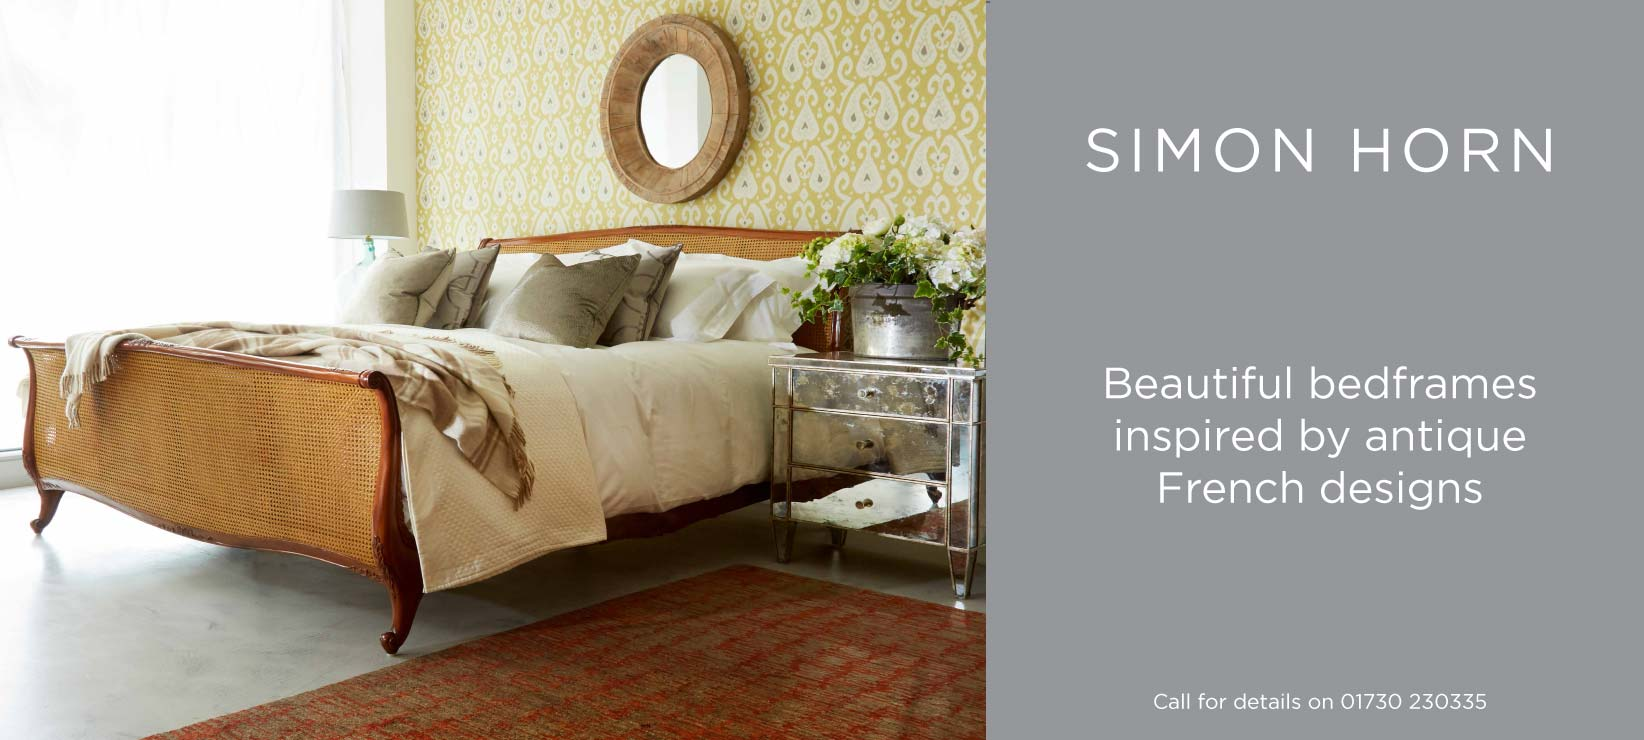 Beautiful Bedframes Inspired By Antique French Designs Simon Horn